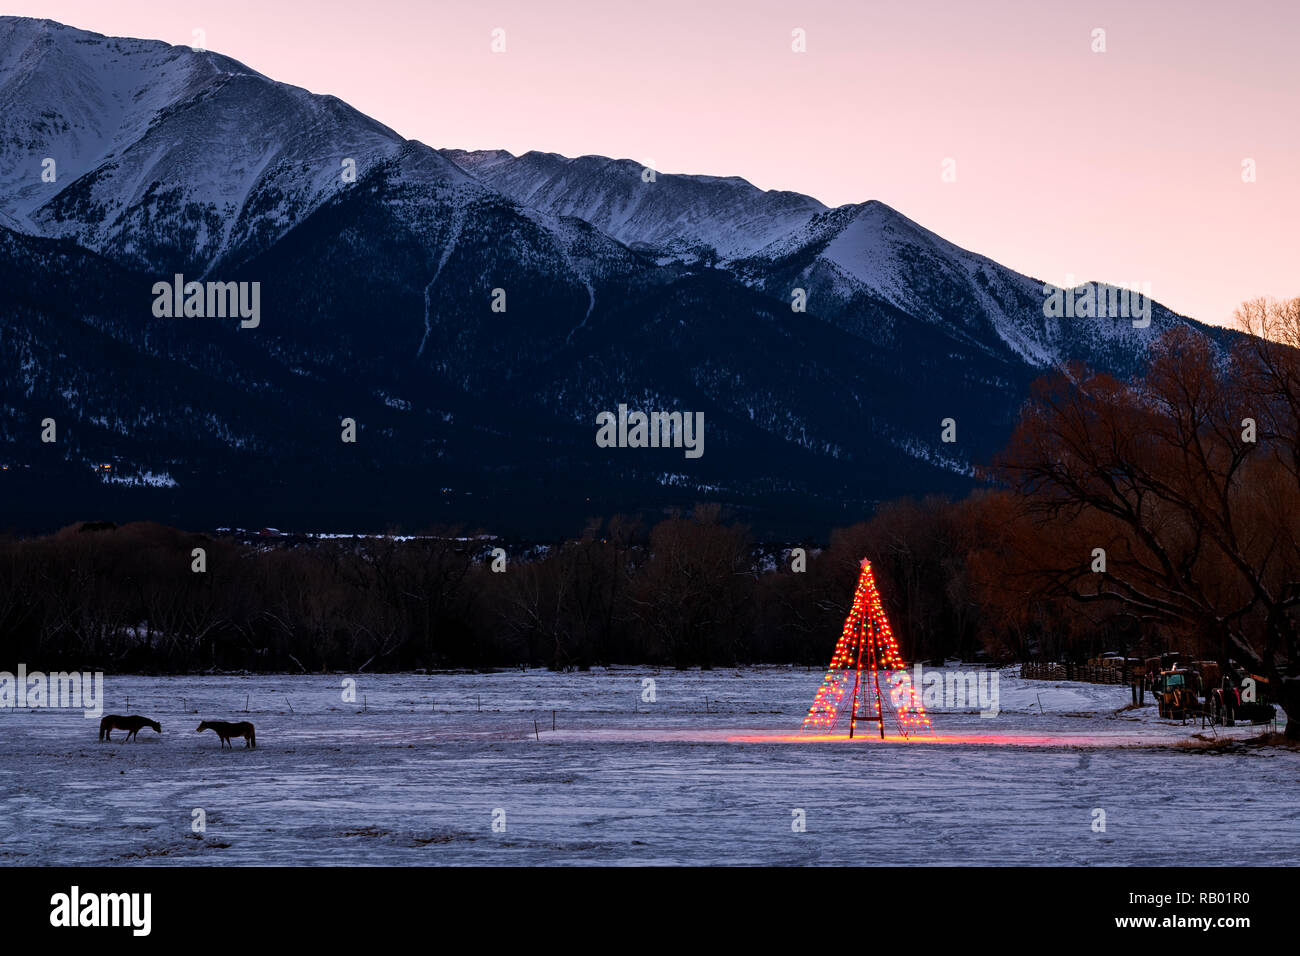 Christmas In Colorado Mountains.Lone Christmas Tree Illuminated In Snowy Ranch Pasture